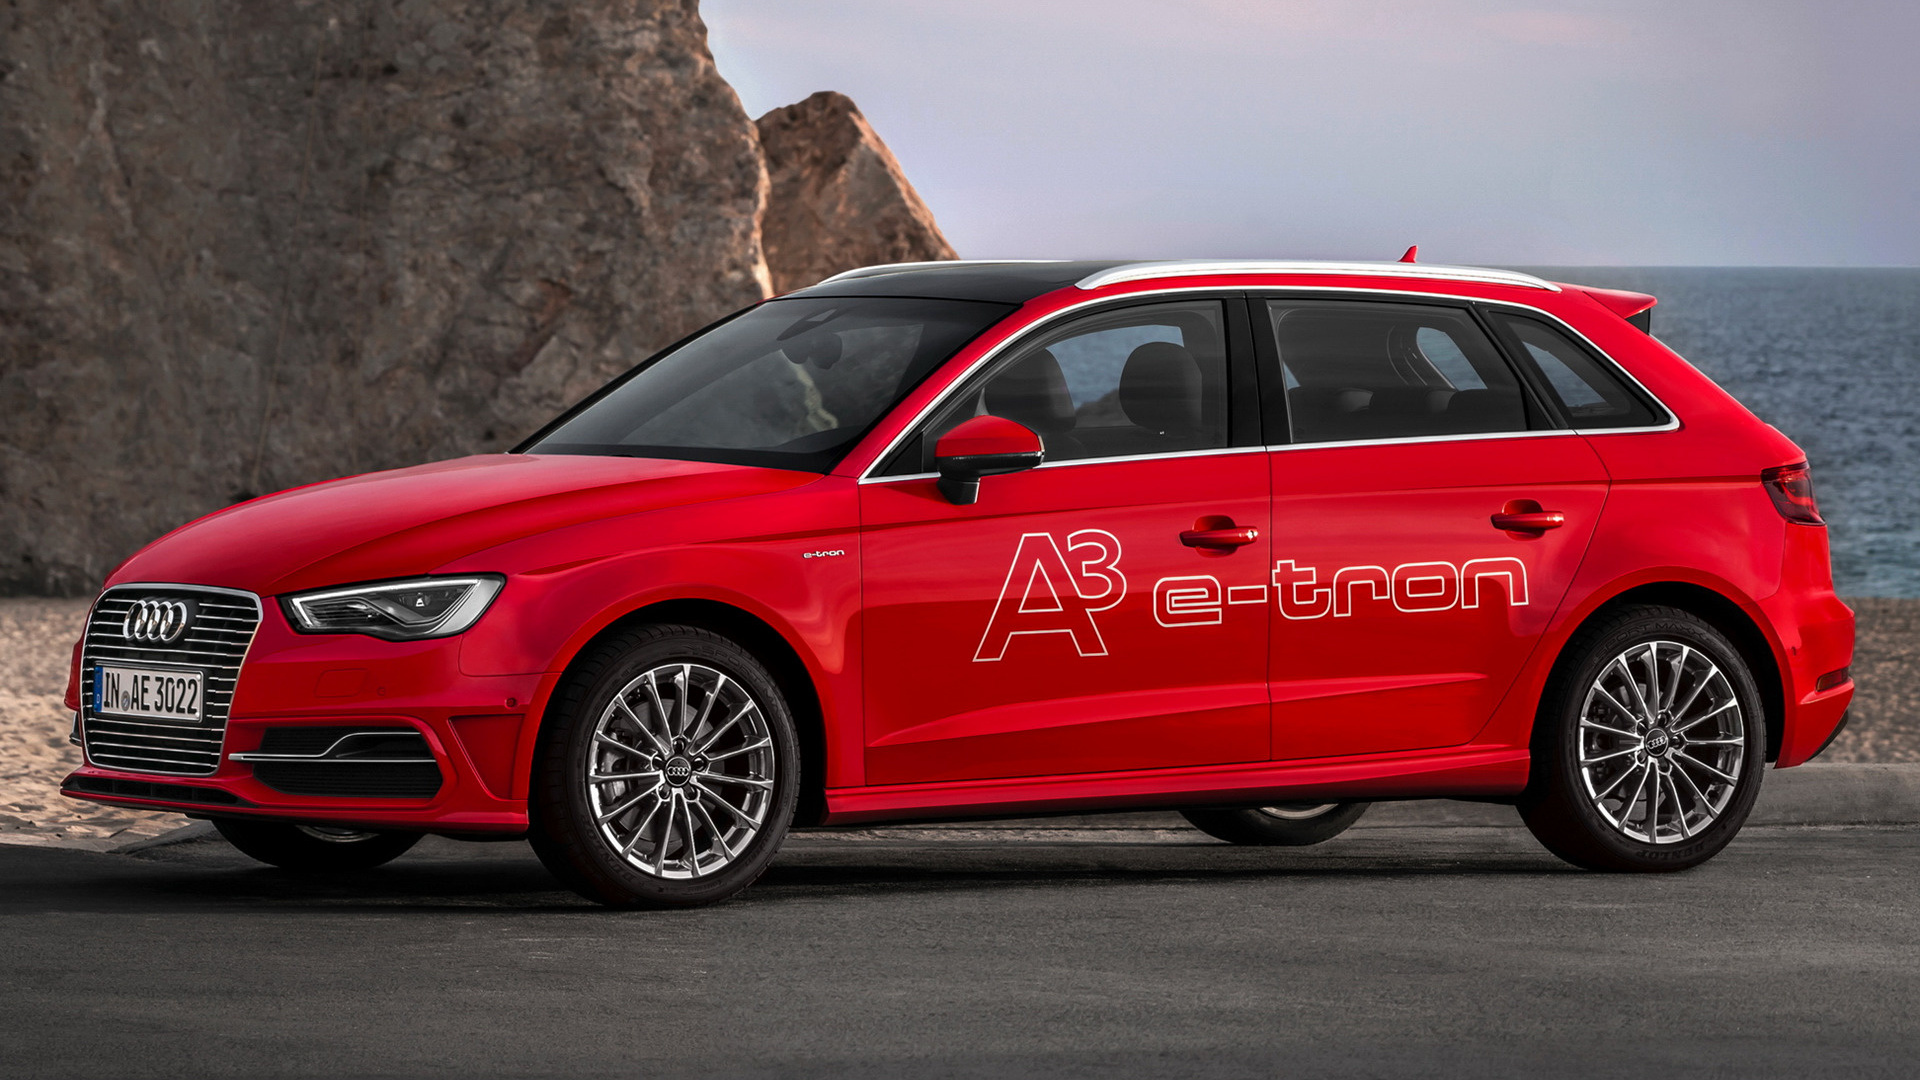 2014 audi a3 sportback e tron s line wallpapers and hd. Black Bedroom Furniture Sets. Home Design Ideas